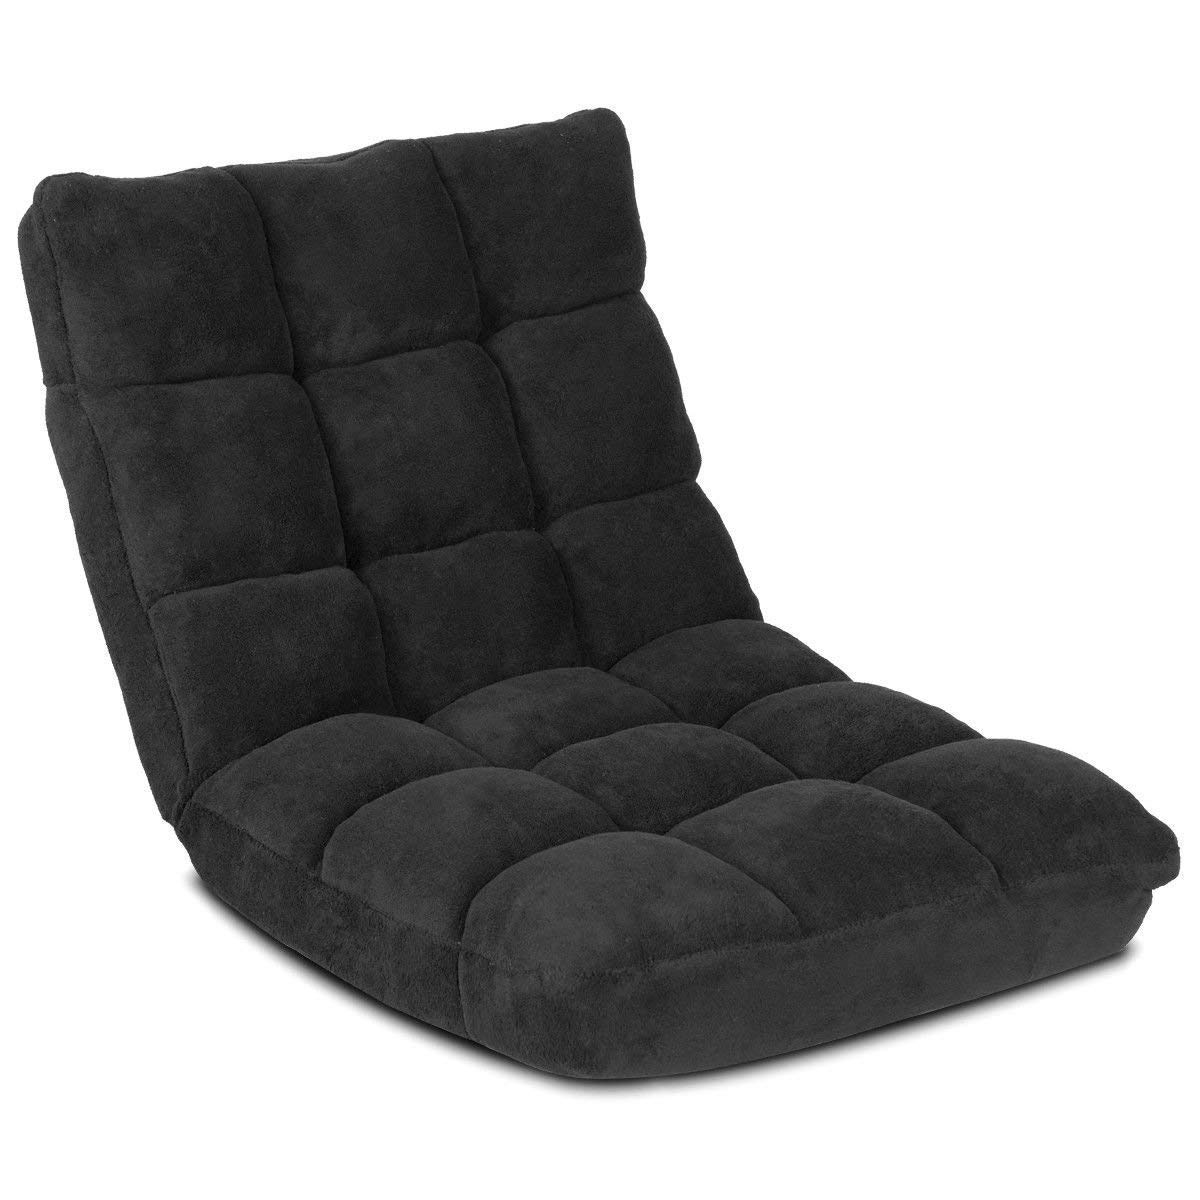 Giantex Floor Folding Gaming Sofa Chair Lounger Folding Adjustable 14-Position Sleeper Bed Couch Recliner (Black) by Giantex